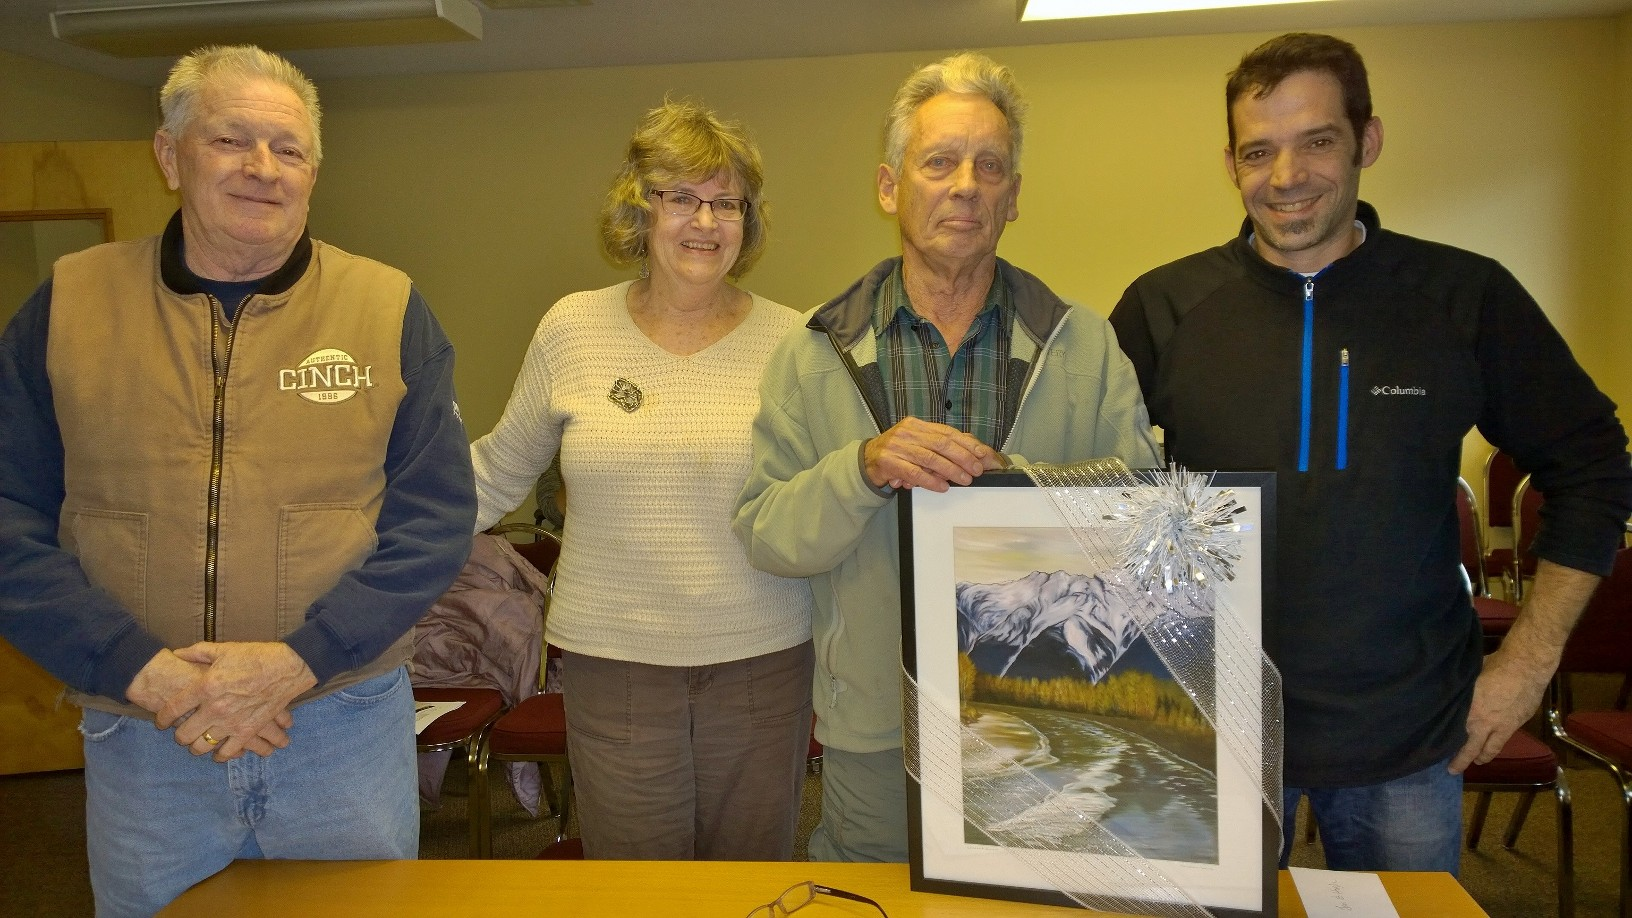 Area C Director Russell Mack (far left) and Village of Pemberton Mayor Mike Richman (far right) present Jan and Hugh Naylor with a Karen Love painting at the November 23 signing ceremony of a Right of Way over their property, securing access to trails and the river for generations of future users